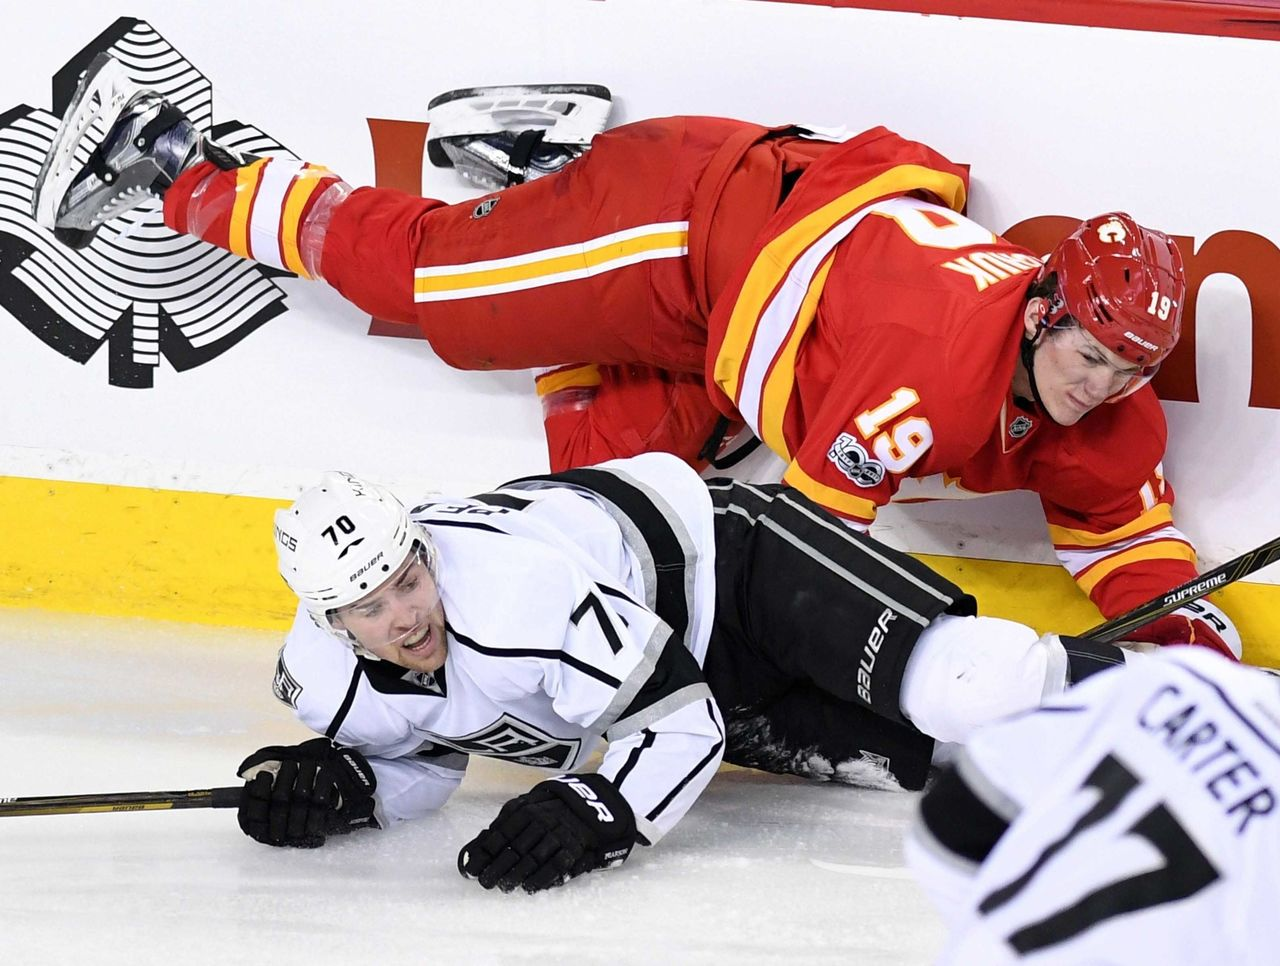 Cropped 2017 03 20t042749z 1279734106 nocid rtrmadp 3 nhl los angeles kings at calgary flames